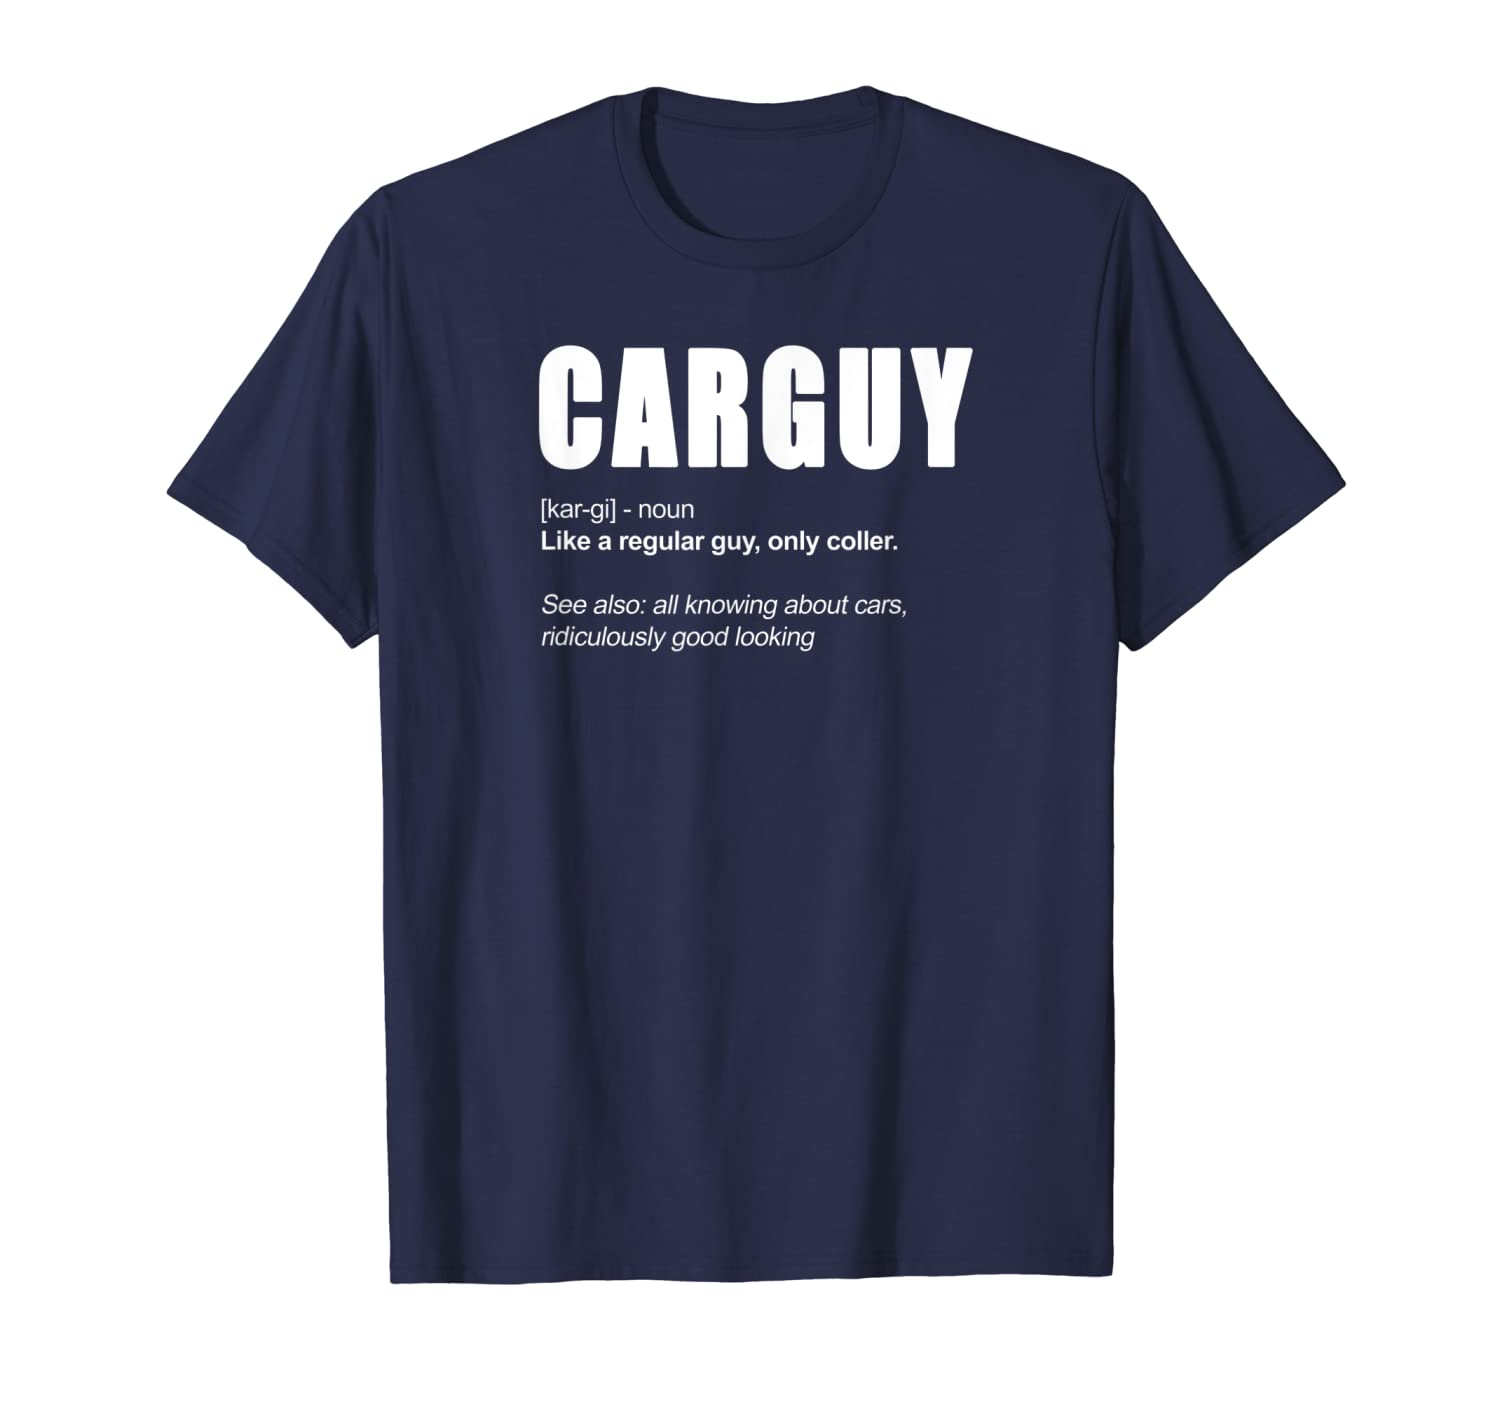 Funny Car Guy T-shirt – Car Guy Definition